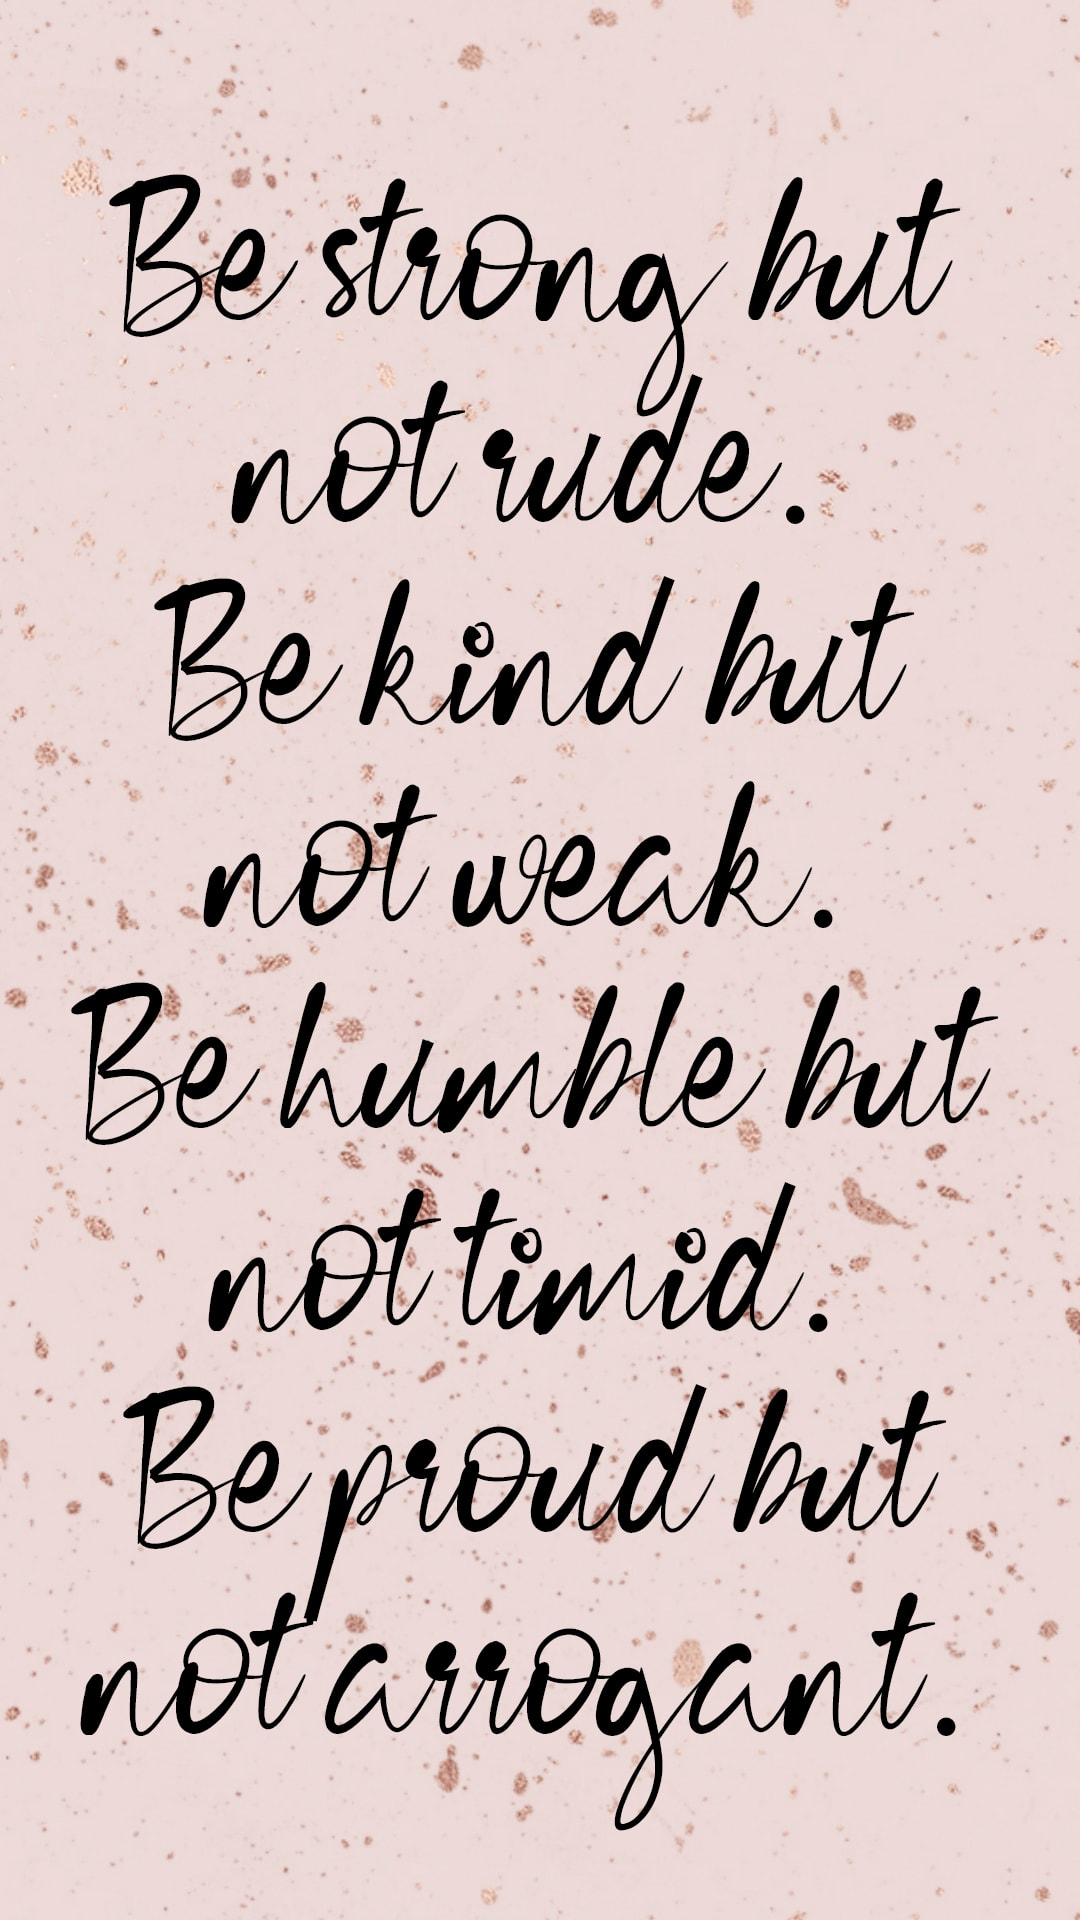 phone wallpaper, phone background, quotes to live by, free phone wallpapers, free iPhone wallpaper, free phone backgrounds, inspirational phone wallpapers